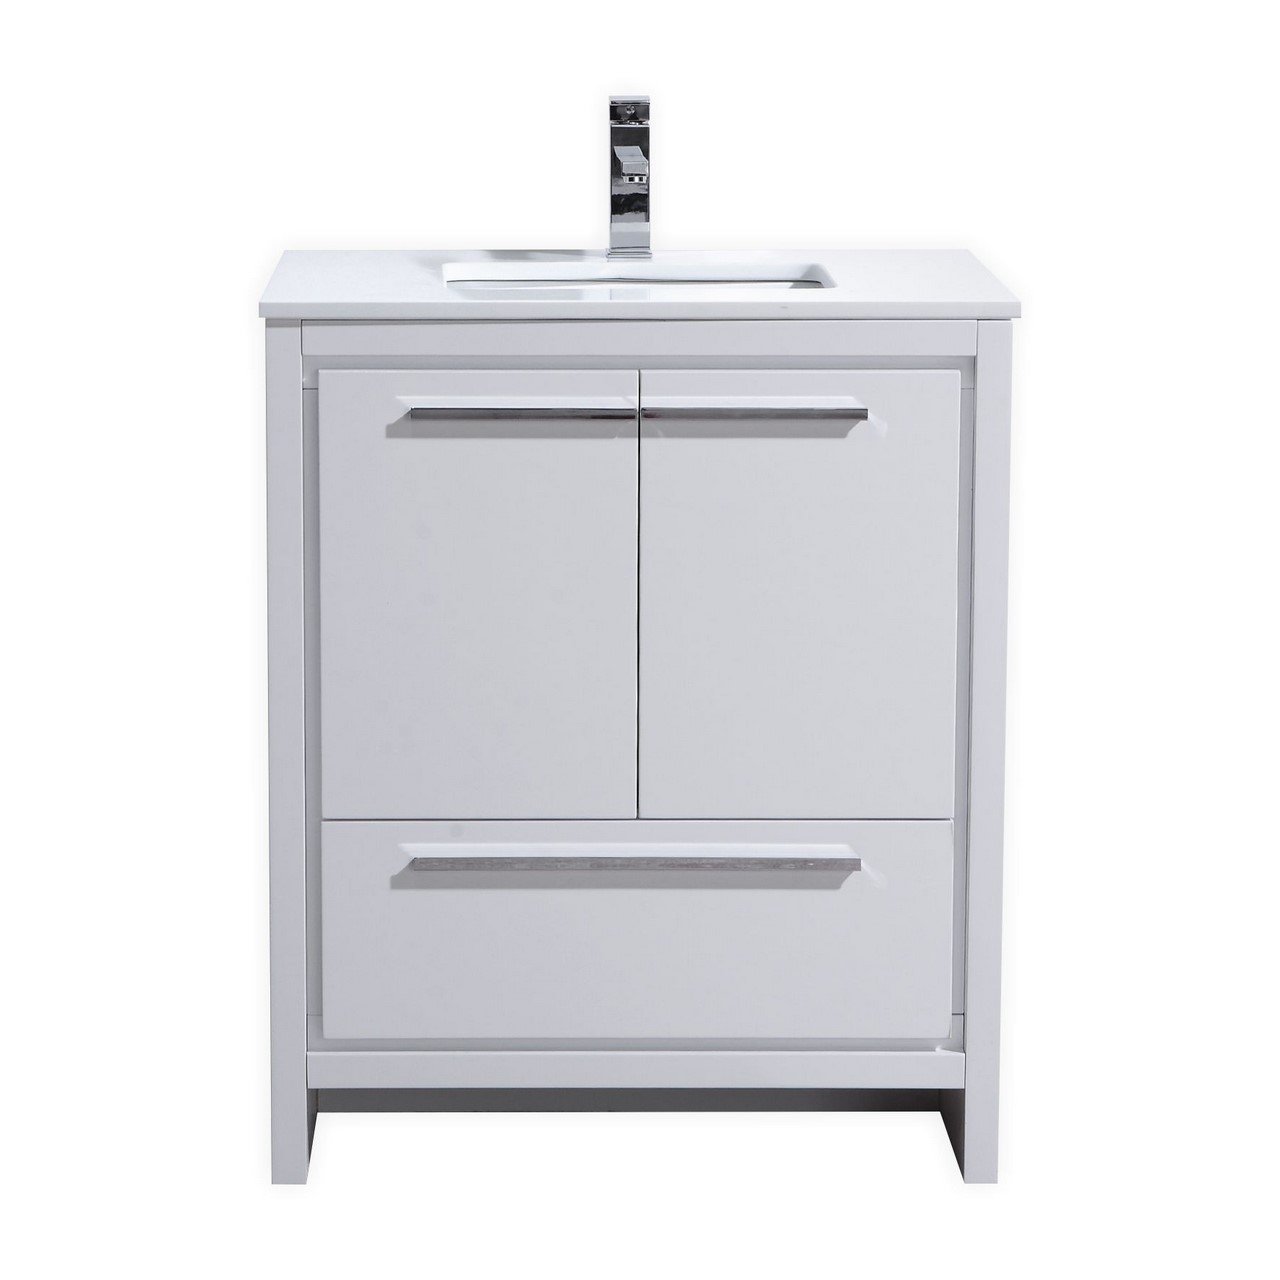 KubeBath Dolce 30u2033 High Gloss White Modern Bathroom Vanity With White  Quartz Counter Top ...